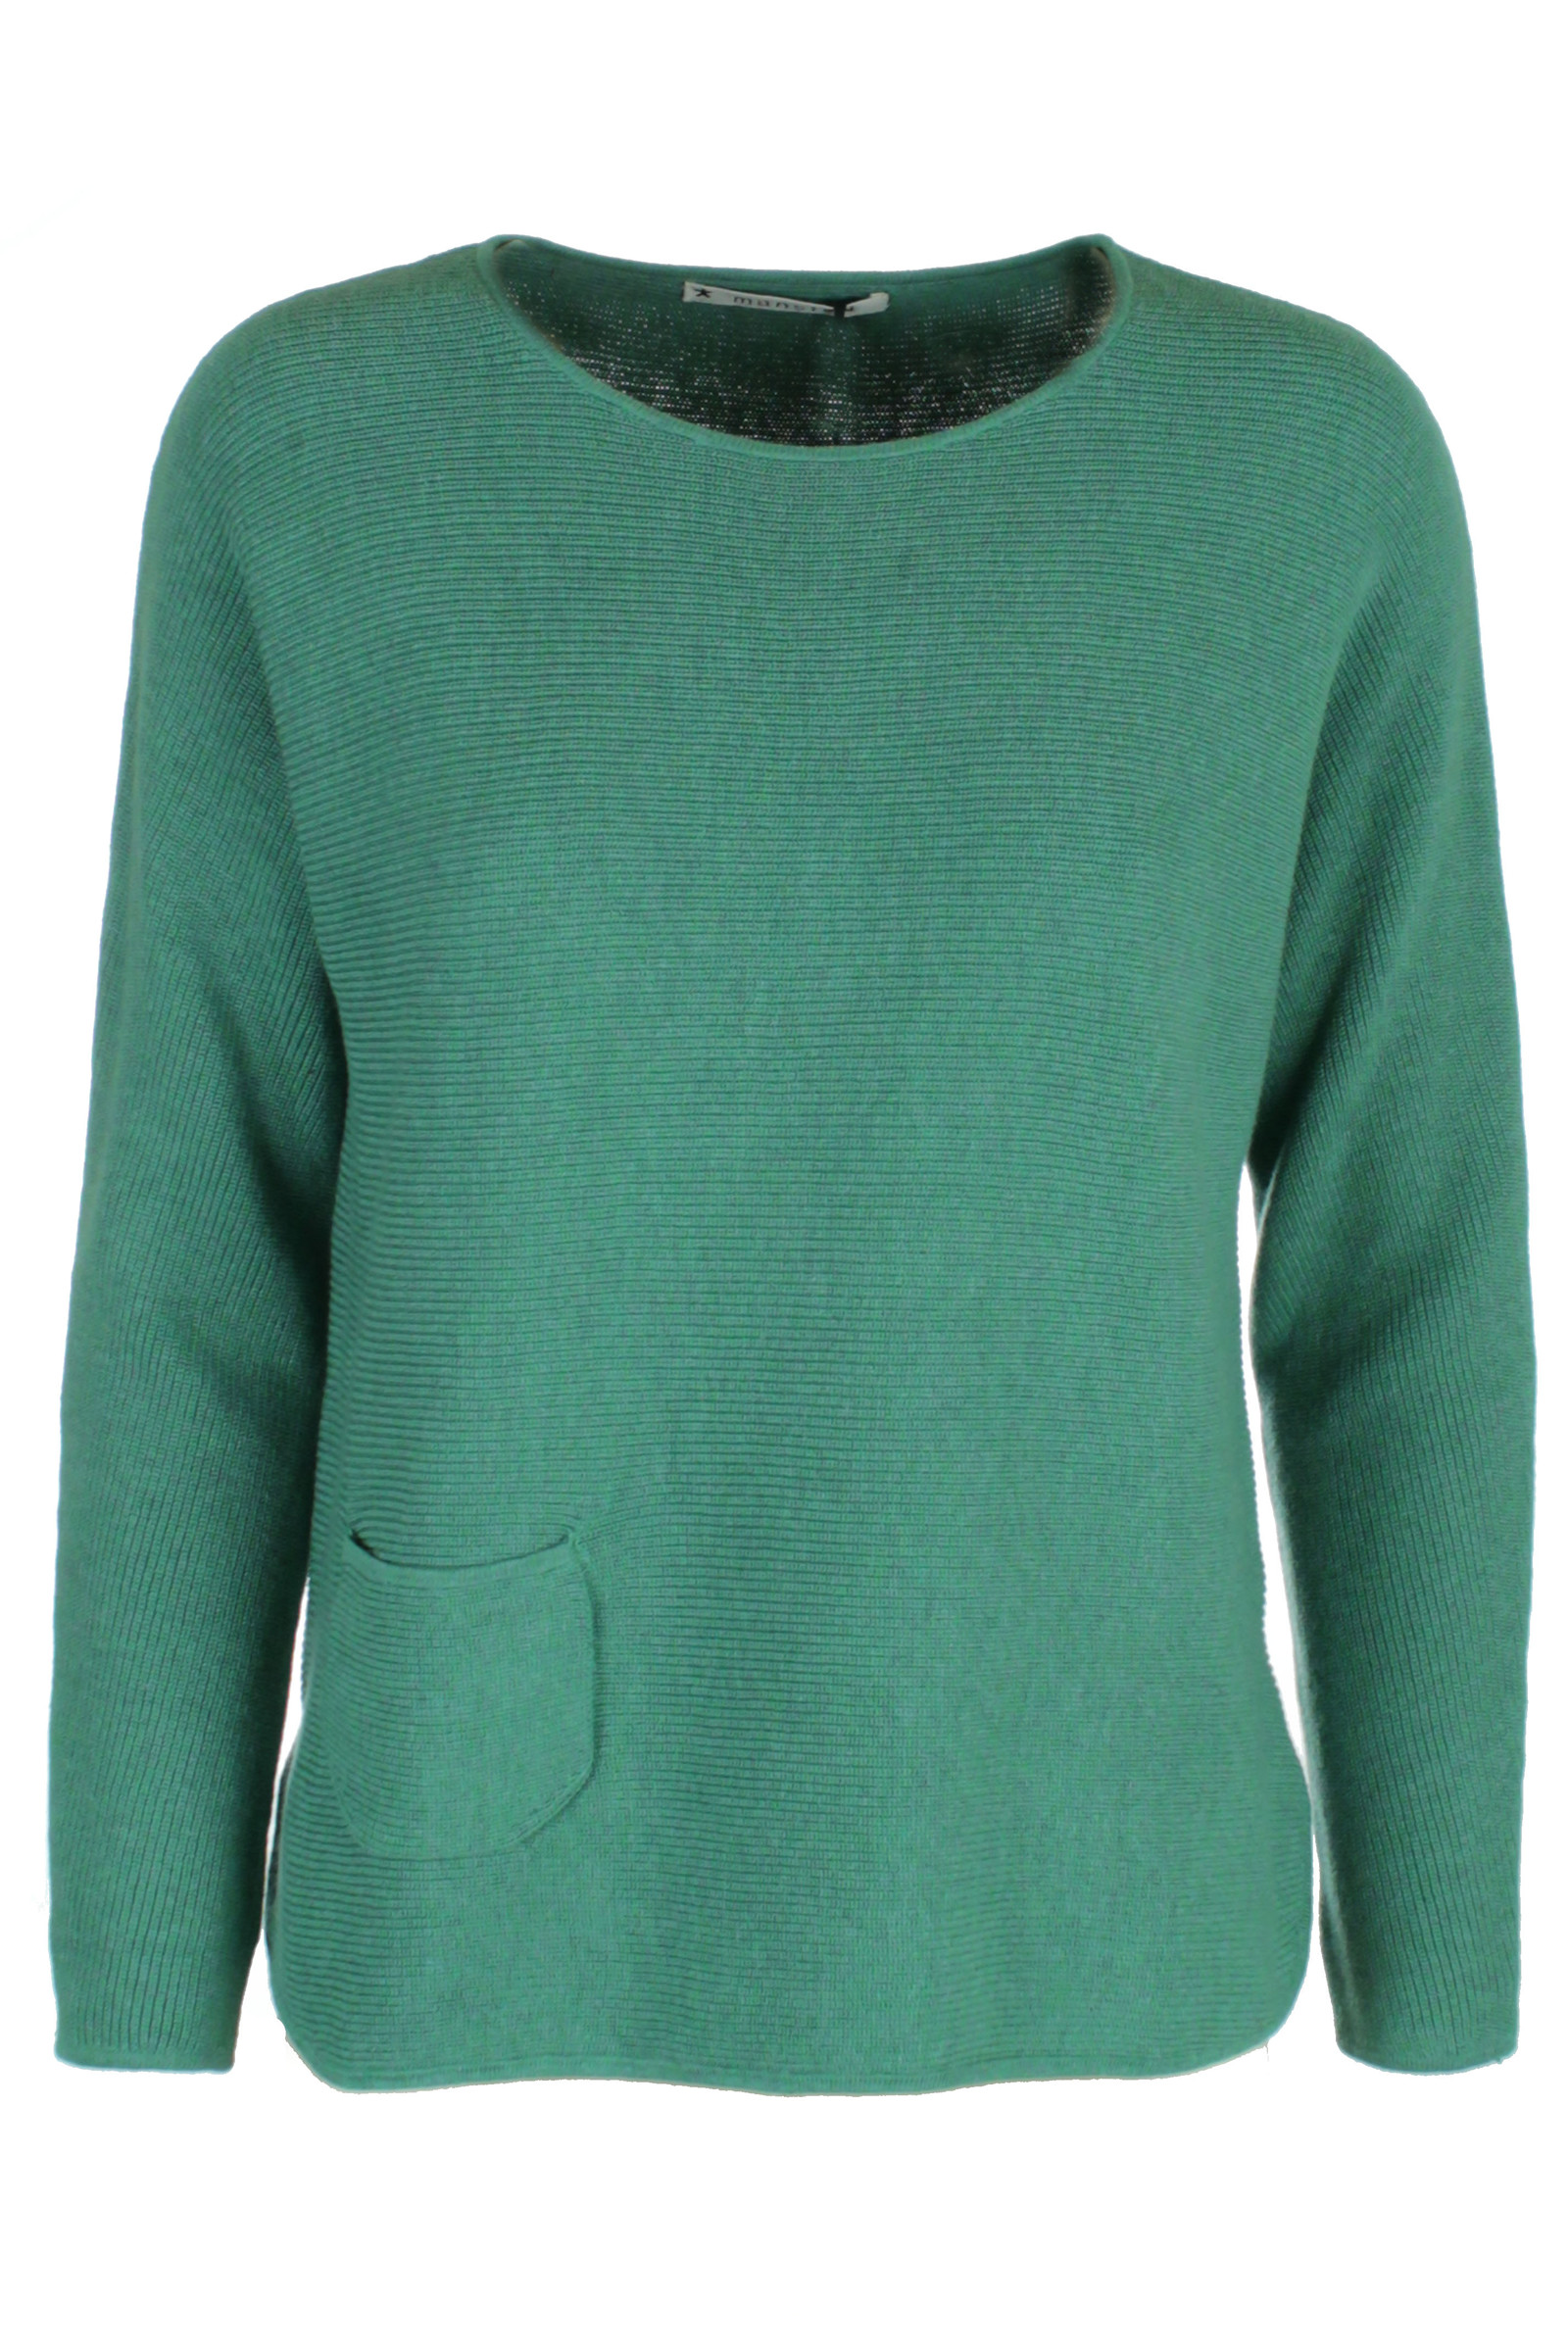 MANSTED NECTAR-SS19 Green